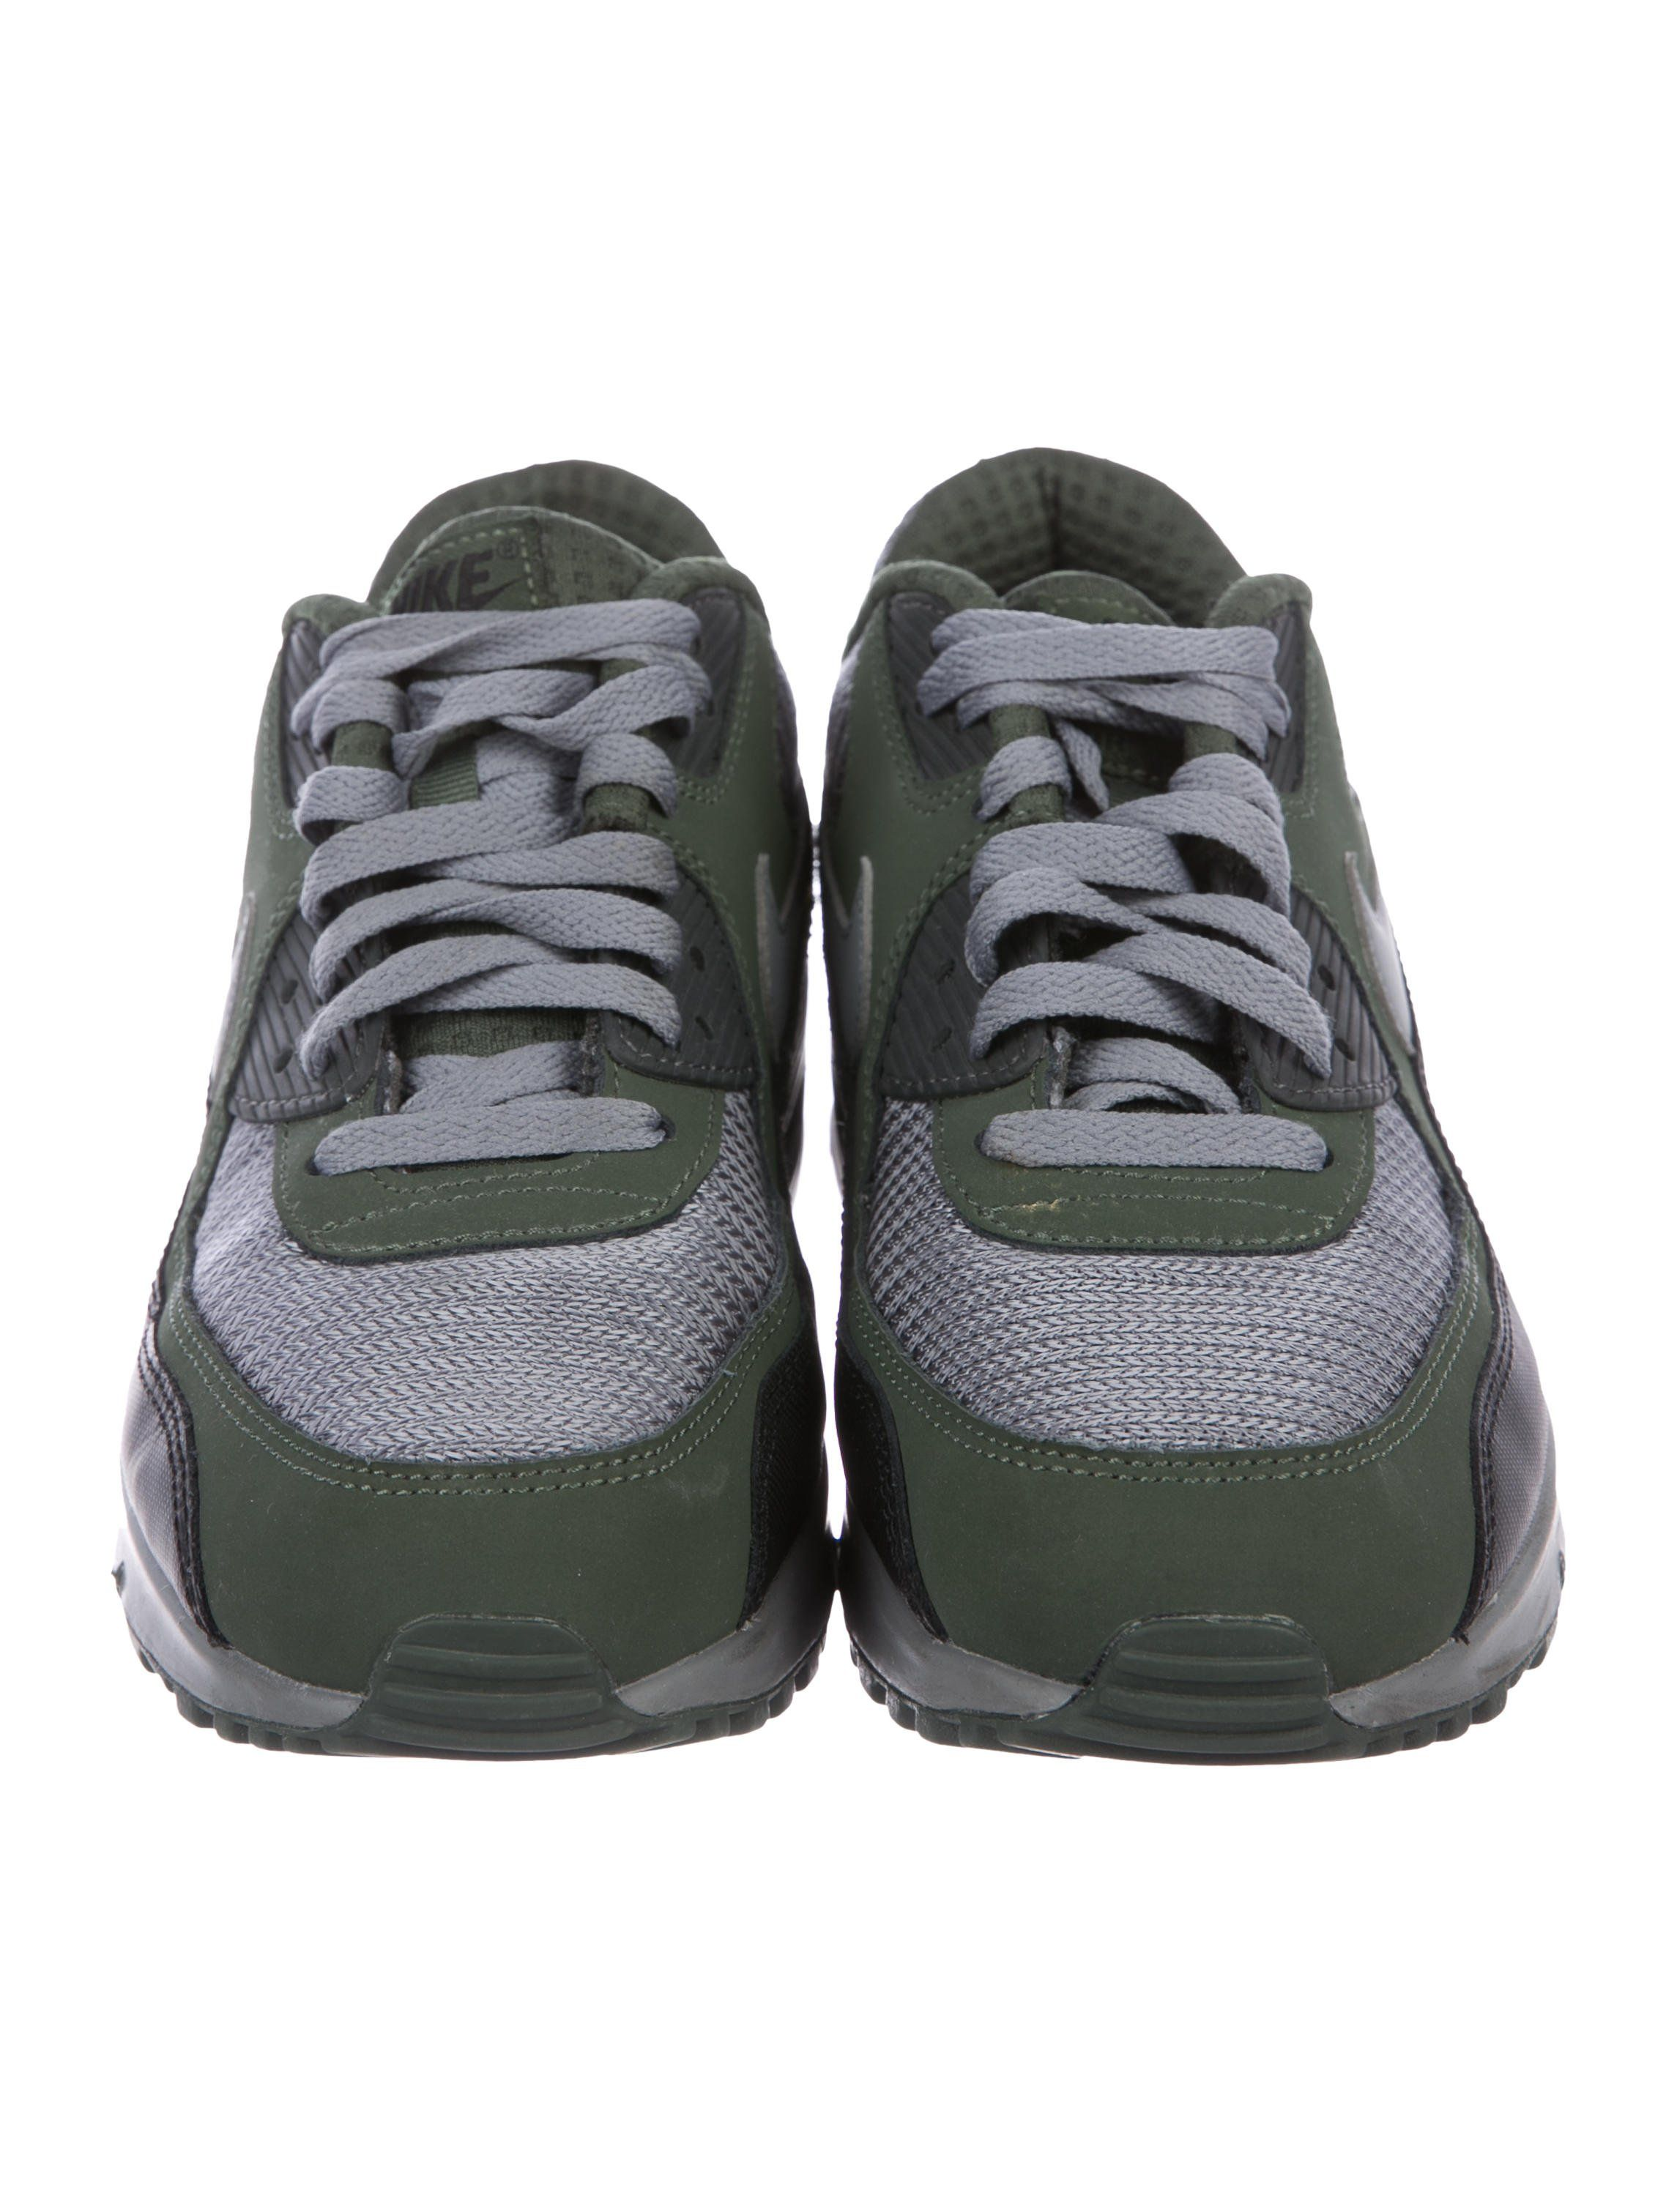 finest selection ebeb5 dac89 Men s olive green nubuck, charcoal mesh and black leather Nike Air Max 90  Essential round-toe low-top sneakers with logo at tongu